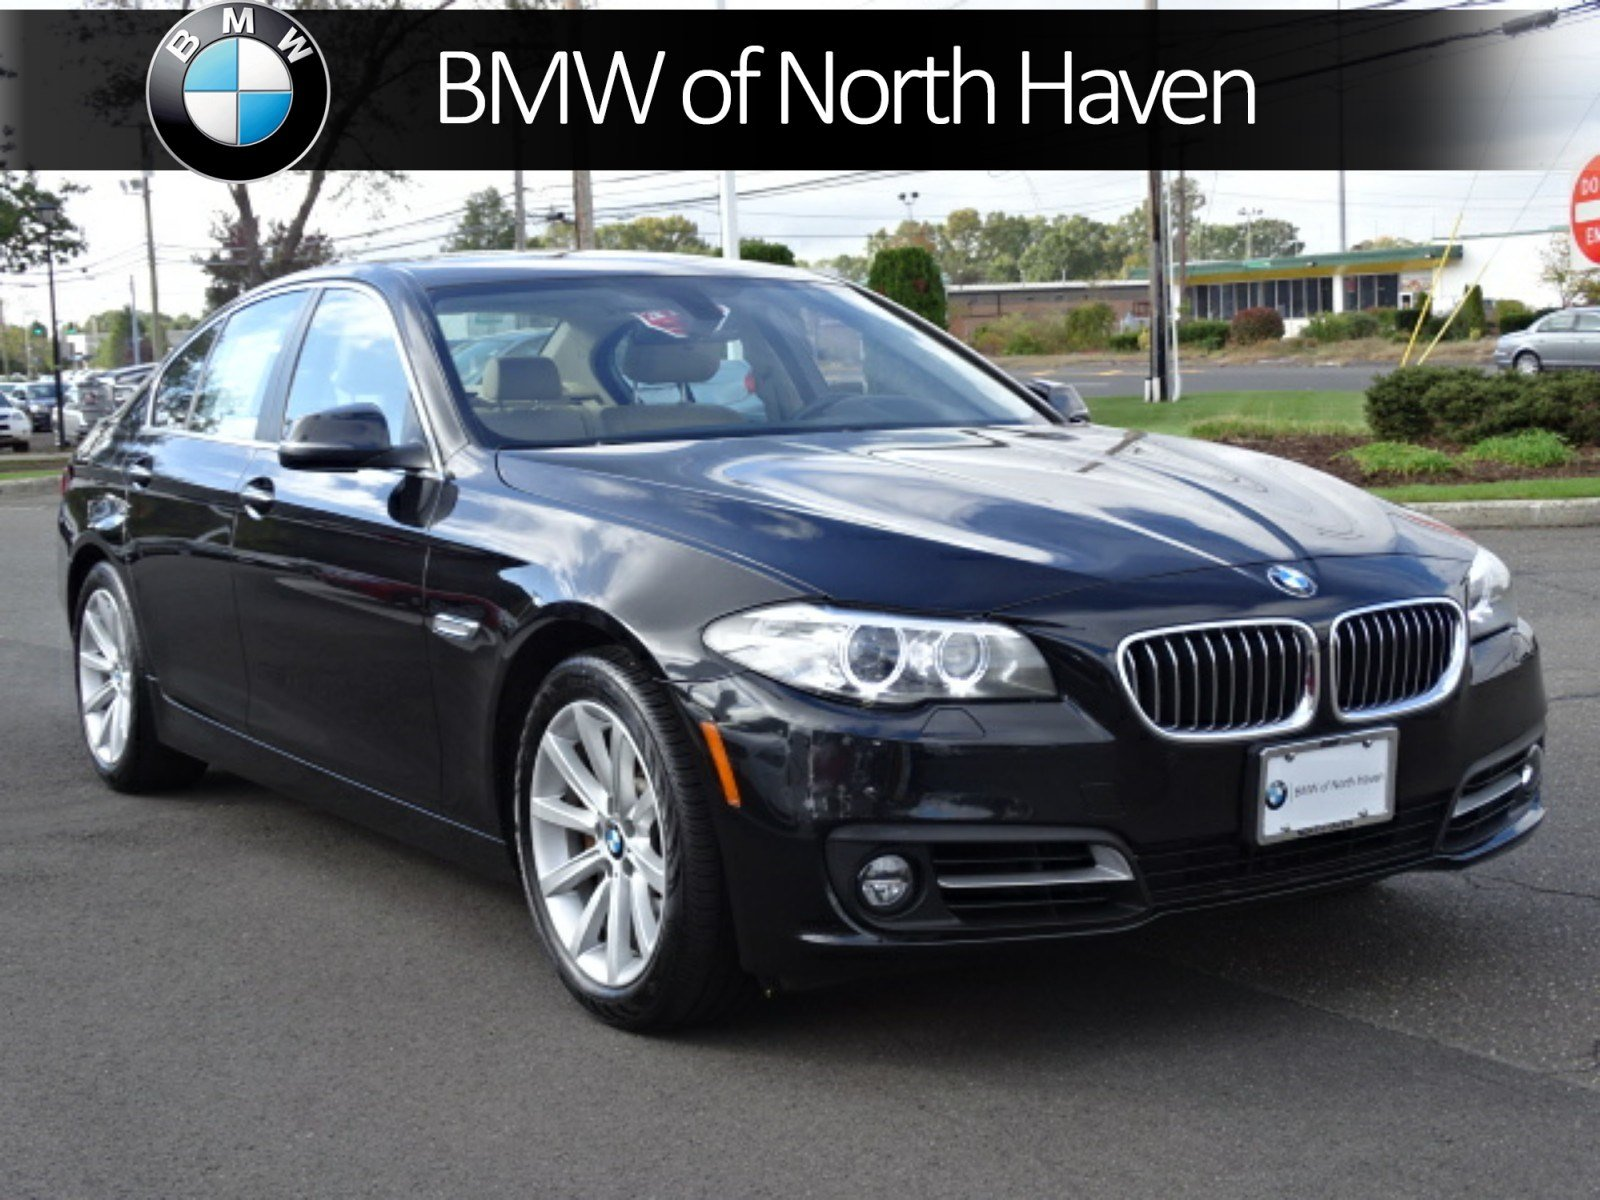 PreOwned BMW Series I XDrive Dr Car In North Haven - 5351 bmw